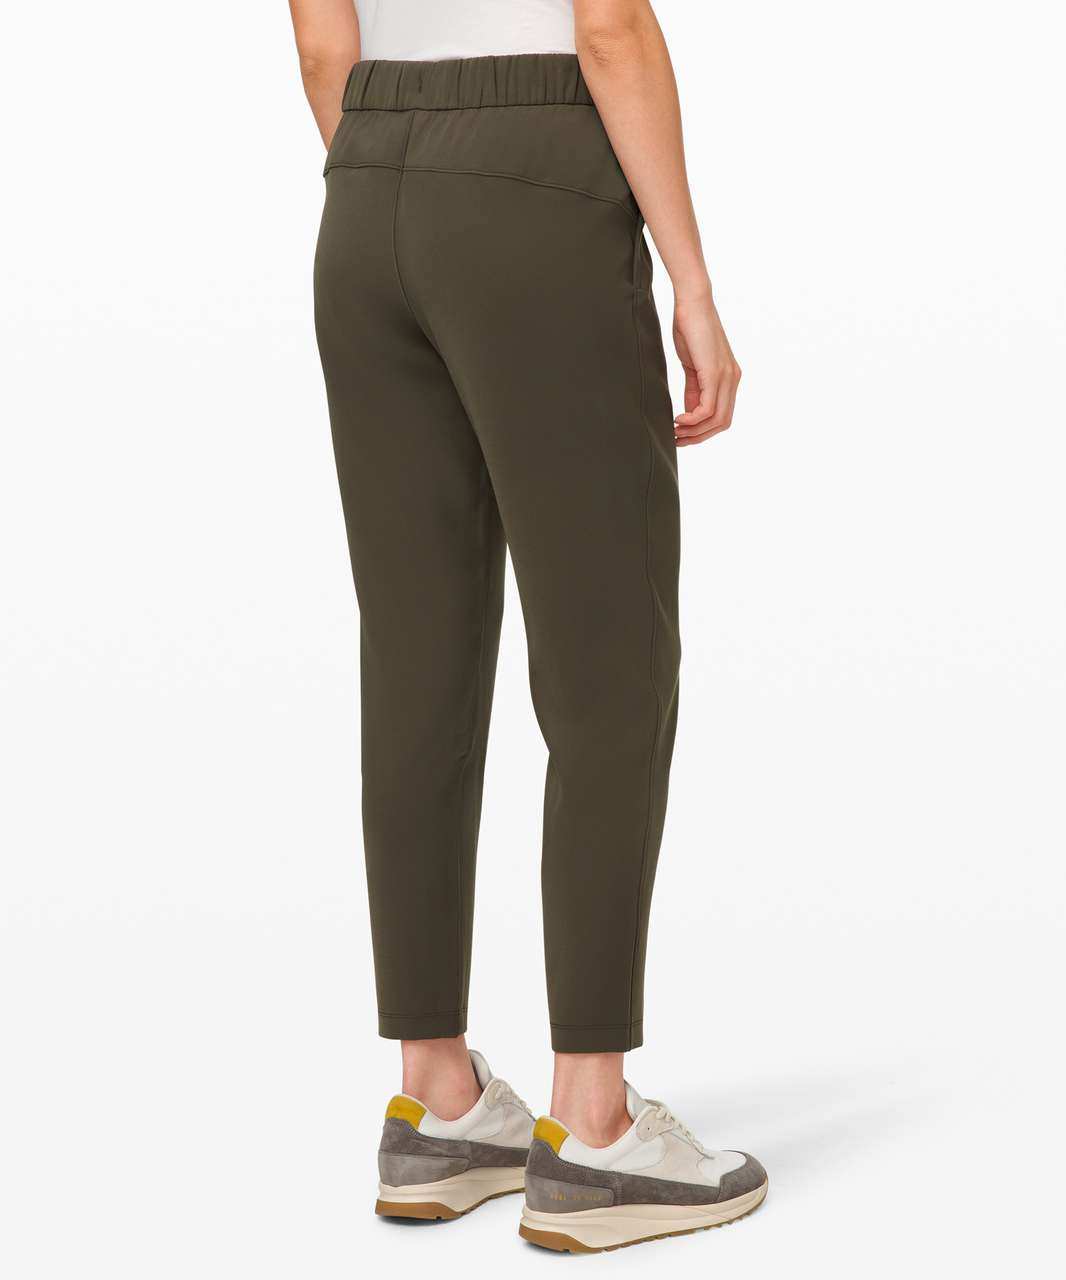 Lululemon On the Fly 7/8 Pant *Woven - Dark Olive